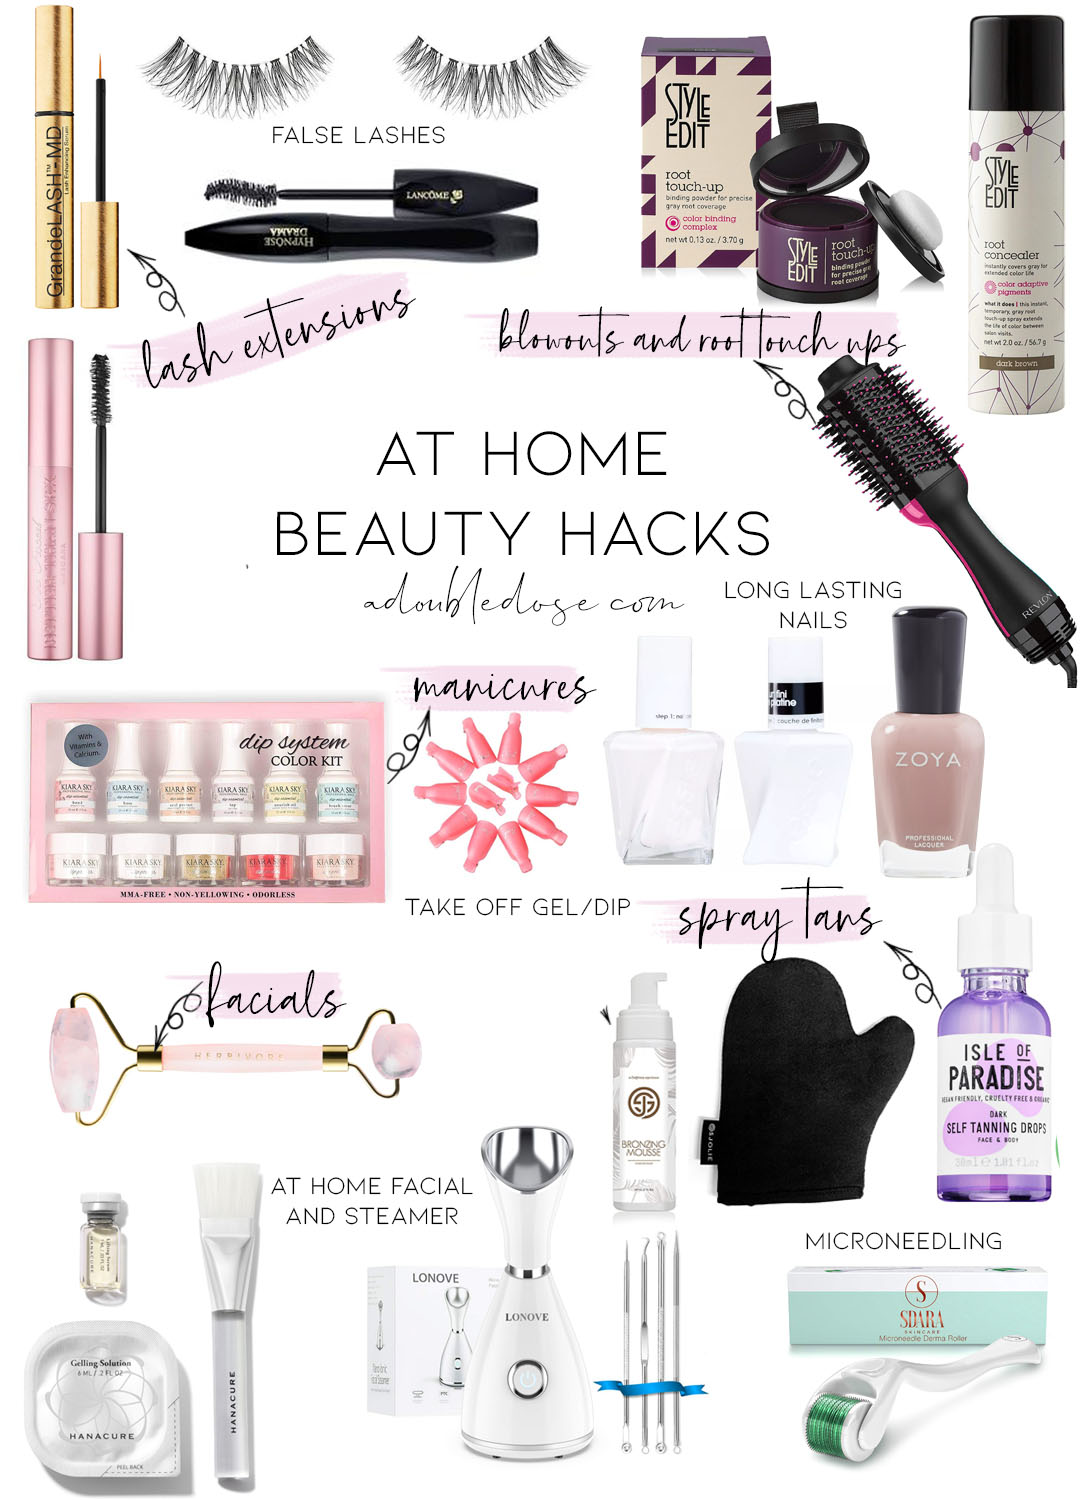 lifestyle and fashion blogger alexis belbel sharing at home beauty hacks like tricks for eyelash extensions, at home facials, self tanning, and at home manicures| adoubledose.com